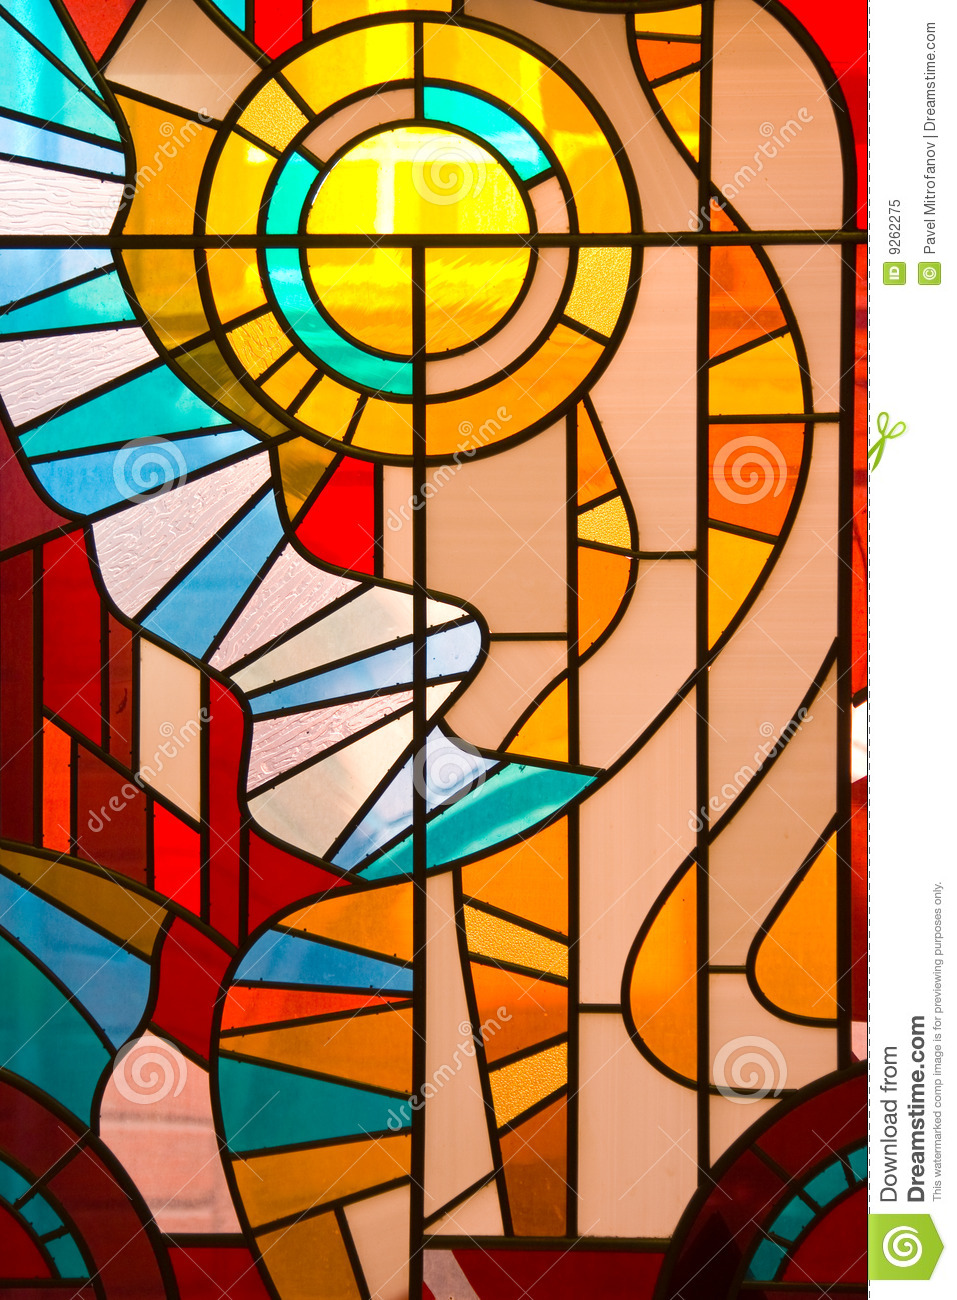 Stained Glass Window Royalty Free Stock Photo.